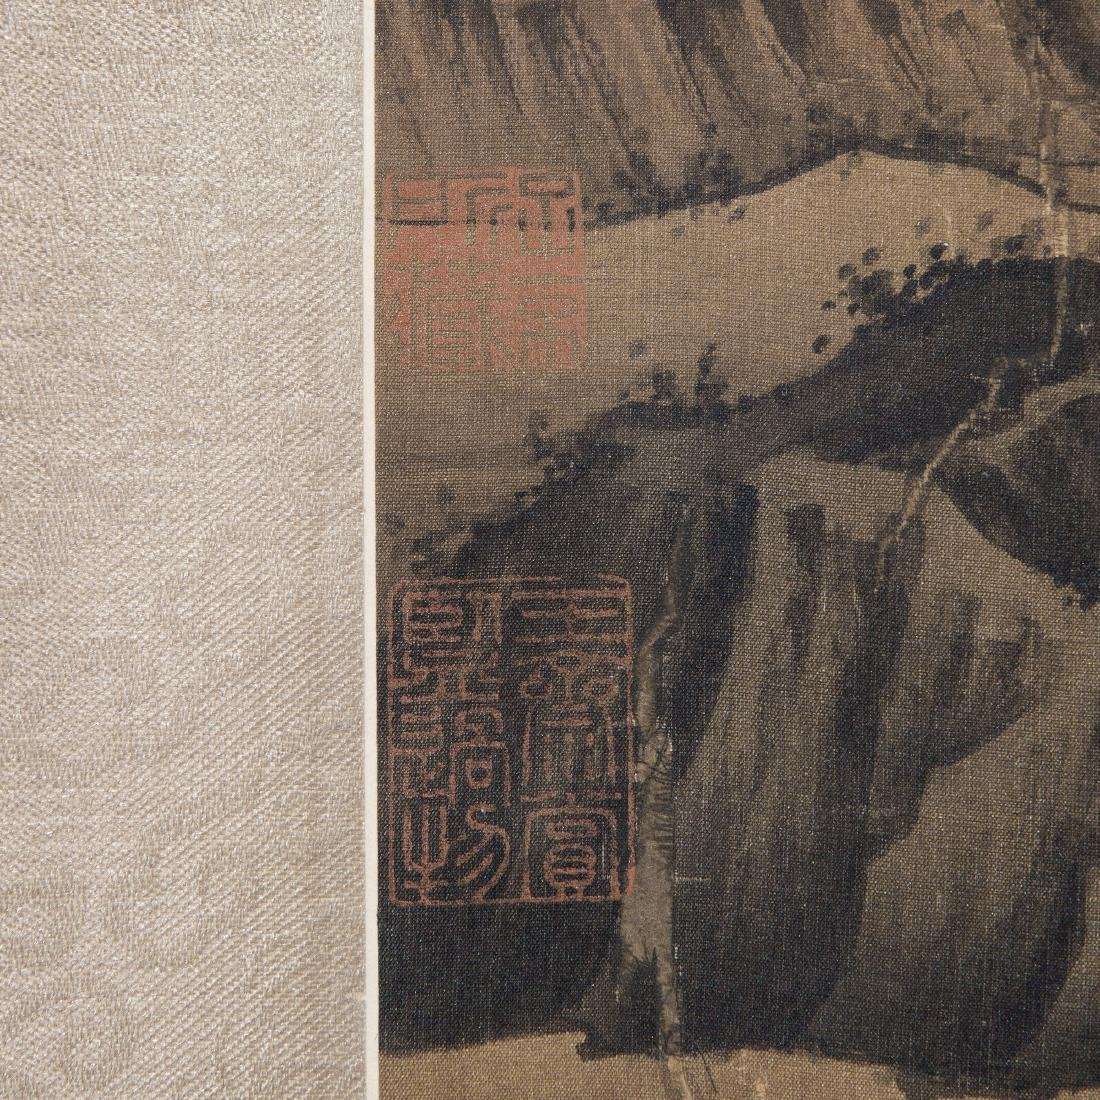 Chinese Painting On Paper Signed By LiuLuZhong - 5